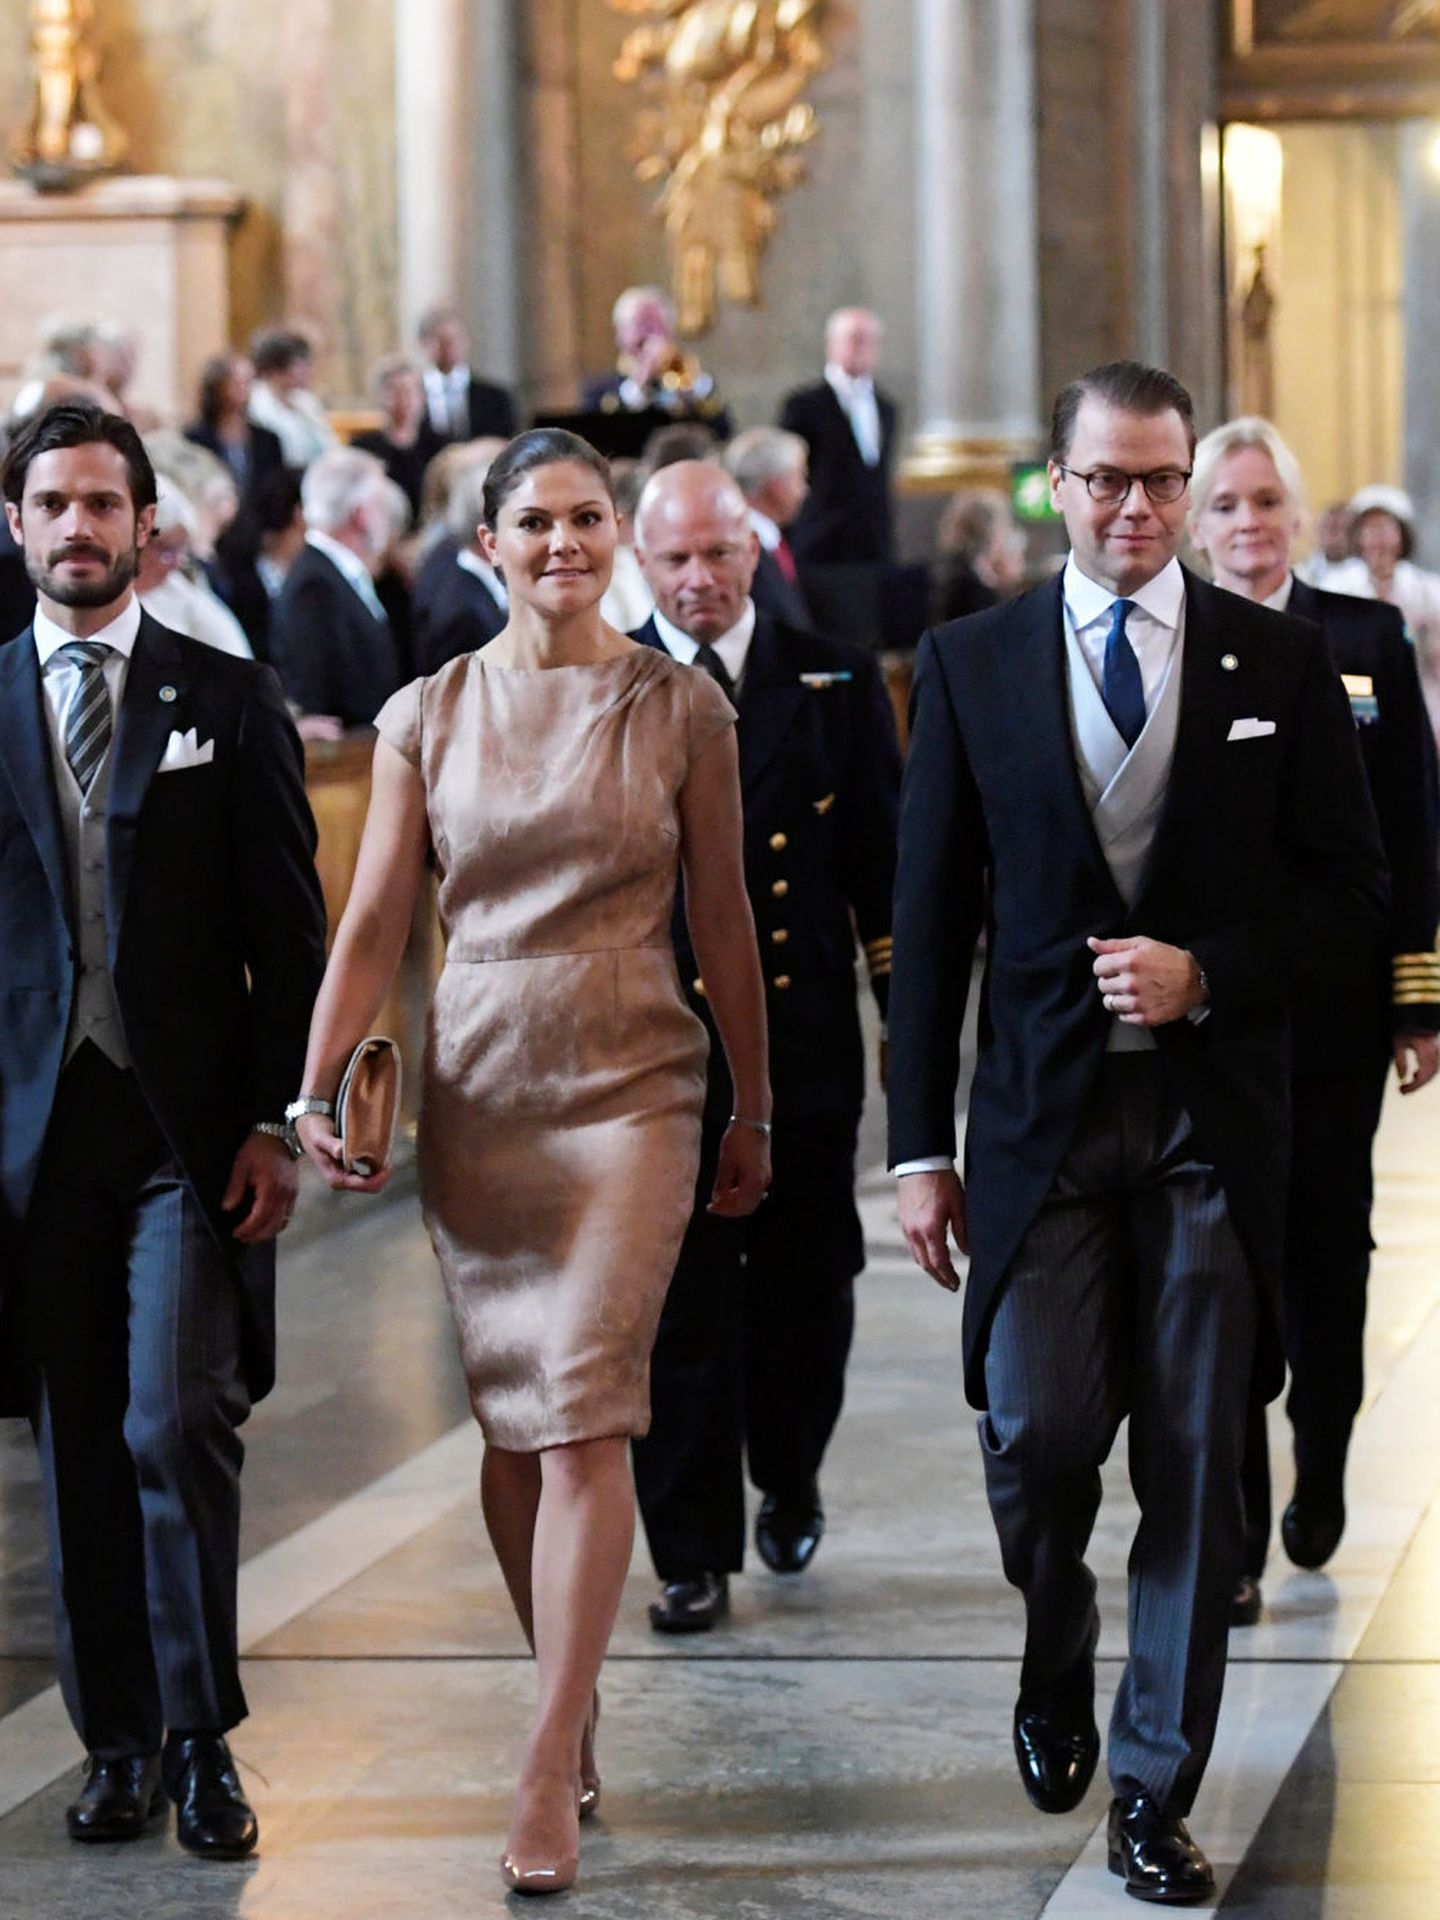 Prince Carl Philip, Crown Princess Victoria and Prince Daniel arrive for the Te Deum ceremony the Te Deum ceremony for the new born Prince Gabriel, son of Prince Carl Philip and Princess Sofia at the Royal Chapel in Stockholm, Sweden September 4, 2017 TT News Agency Anders Wiklund via REUTERS  ATTENTION EDITORS - THIS IMAGE WAS PROVIDED BY A THIRD PARTY. SWEDEN OUT. NO COMMERCIAL OR EDITORIAL SALES IN SWEDEN